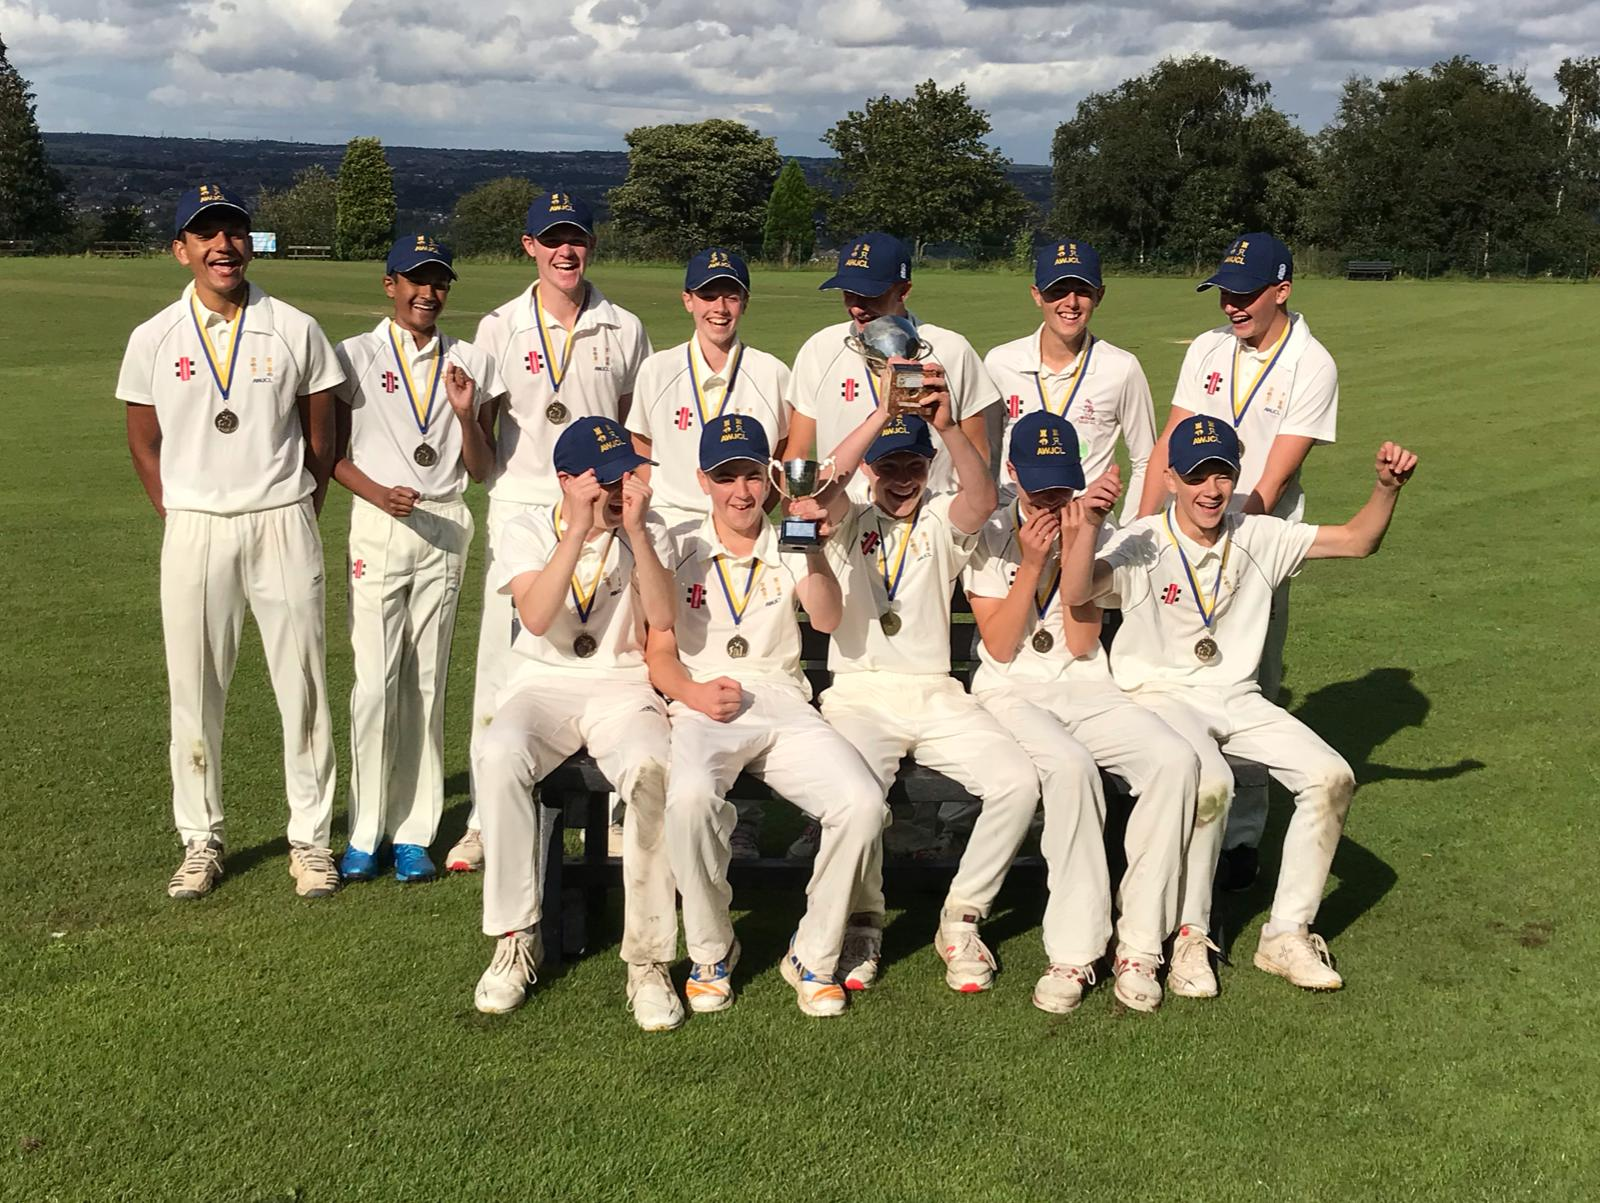 The Cup-winning Lords Taverners' Under 15's team after their victory over Barnsley at Horton Cricket Club - September 2019